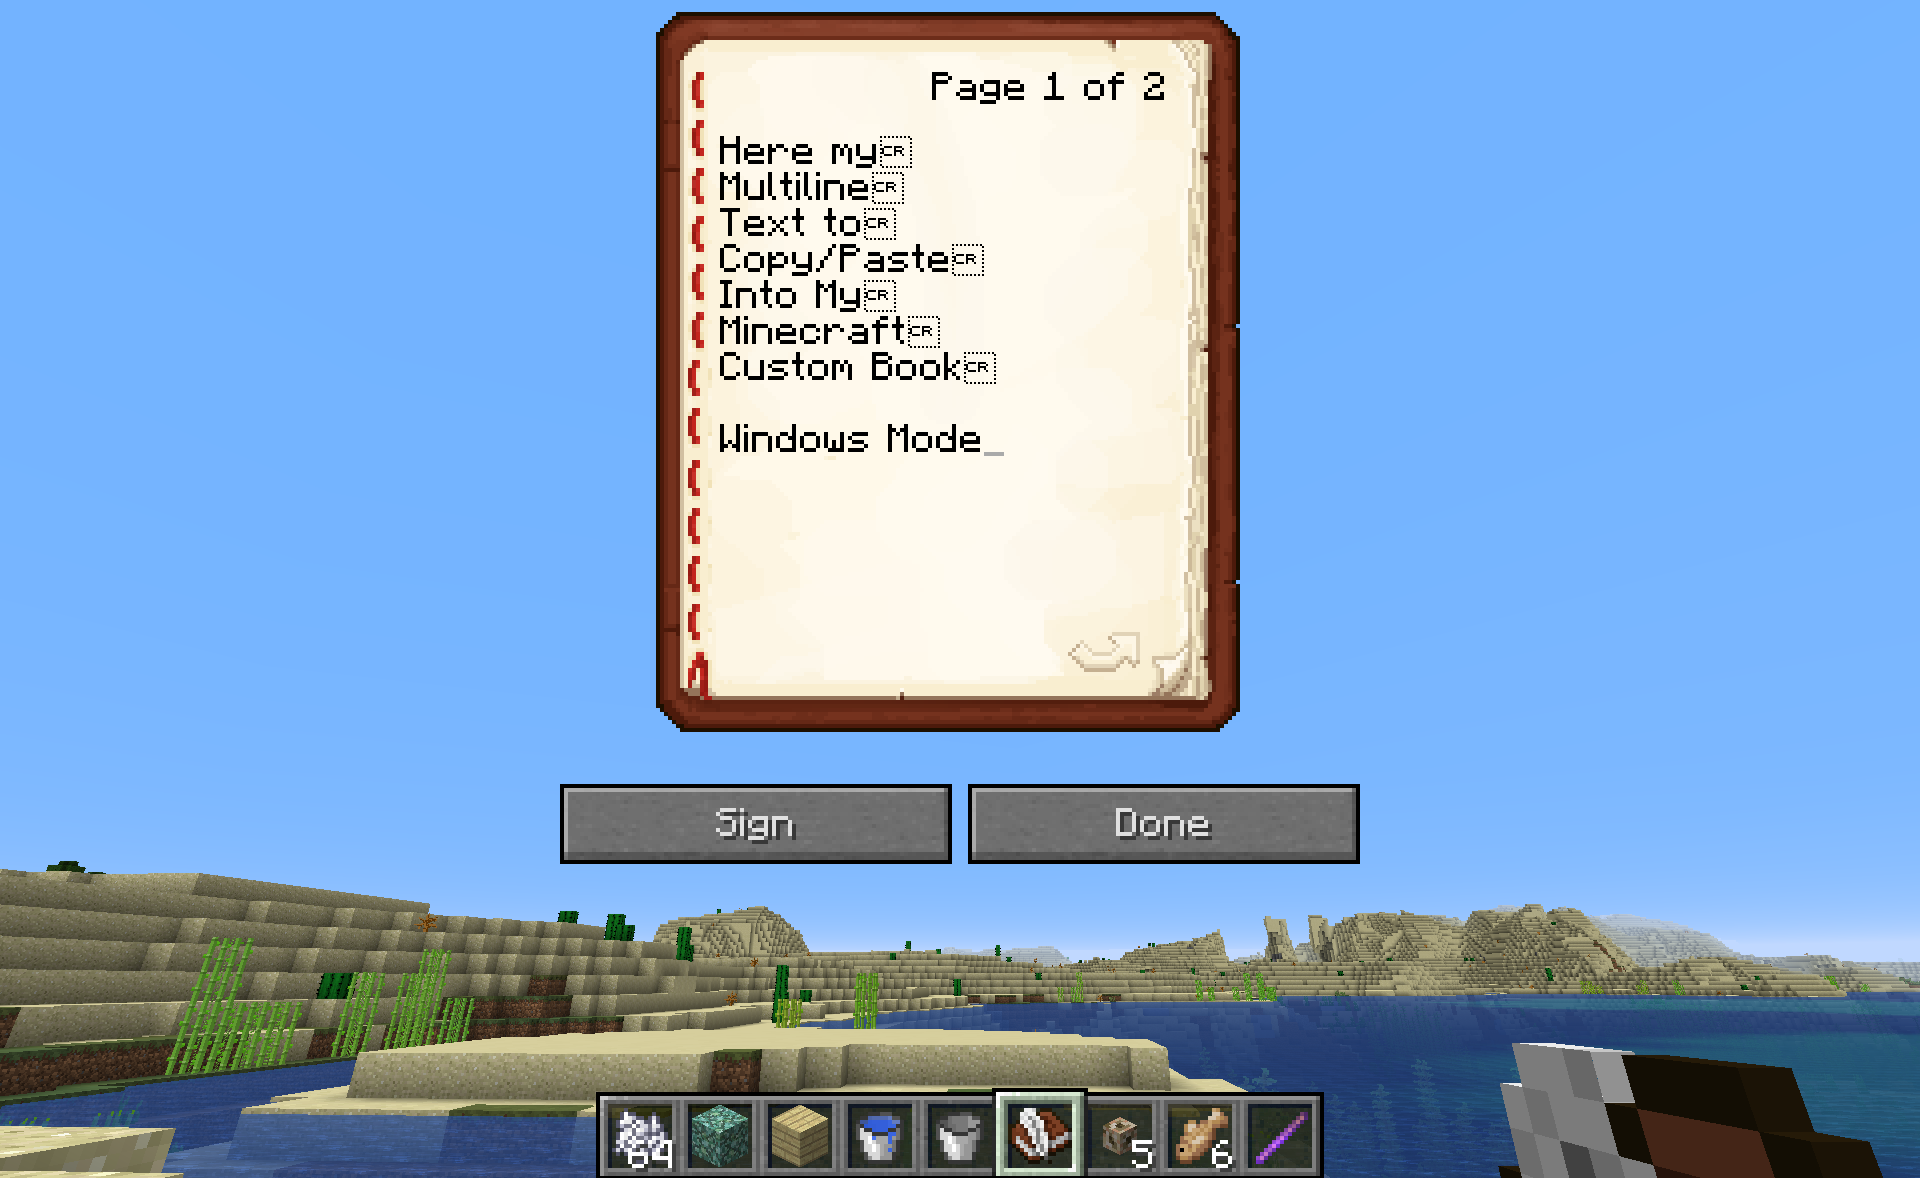 MC-135449] Copy & paste into book and quill displays CR on